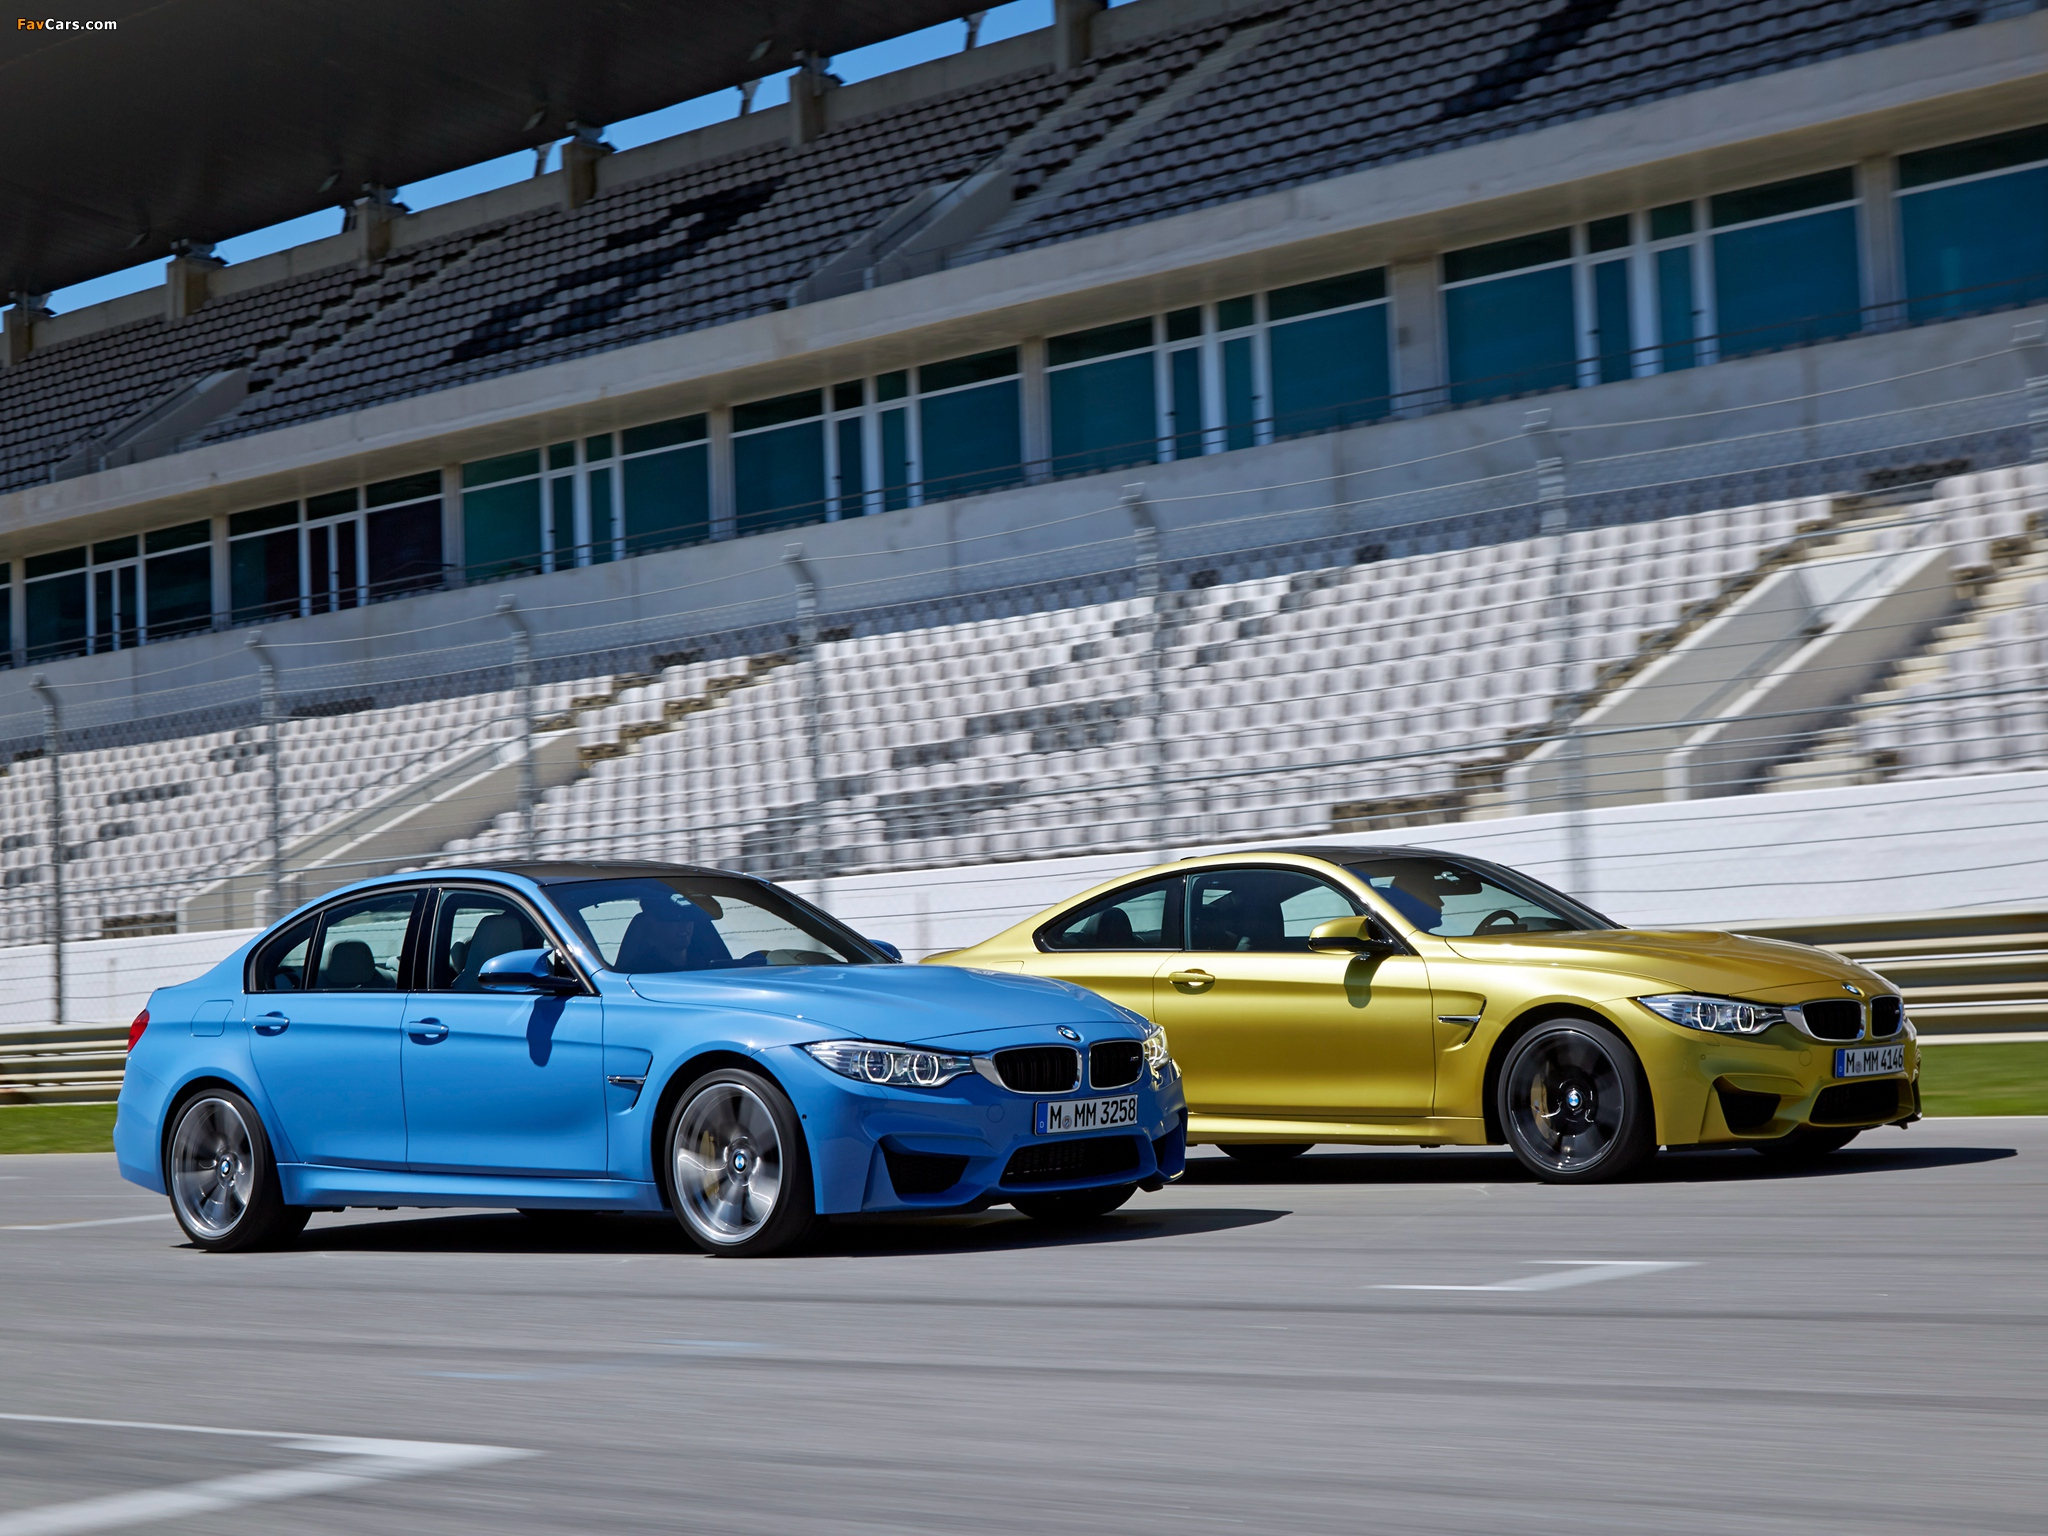 Images of BMW (2048 x 1536)